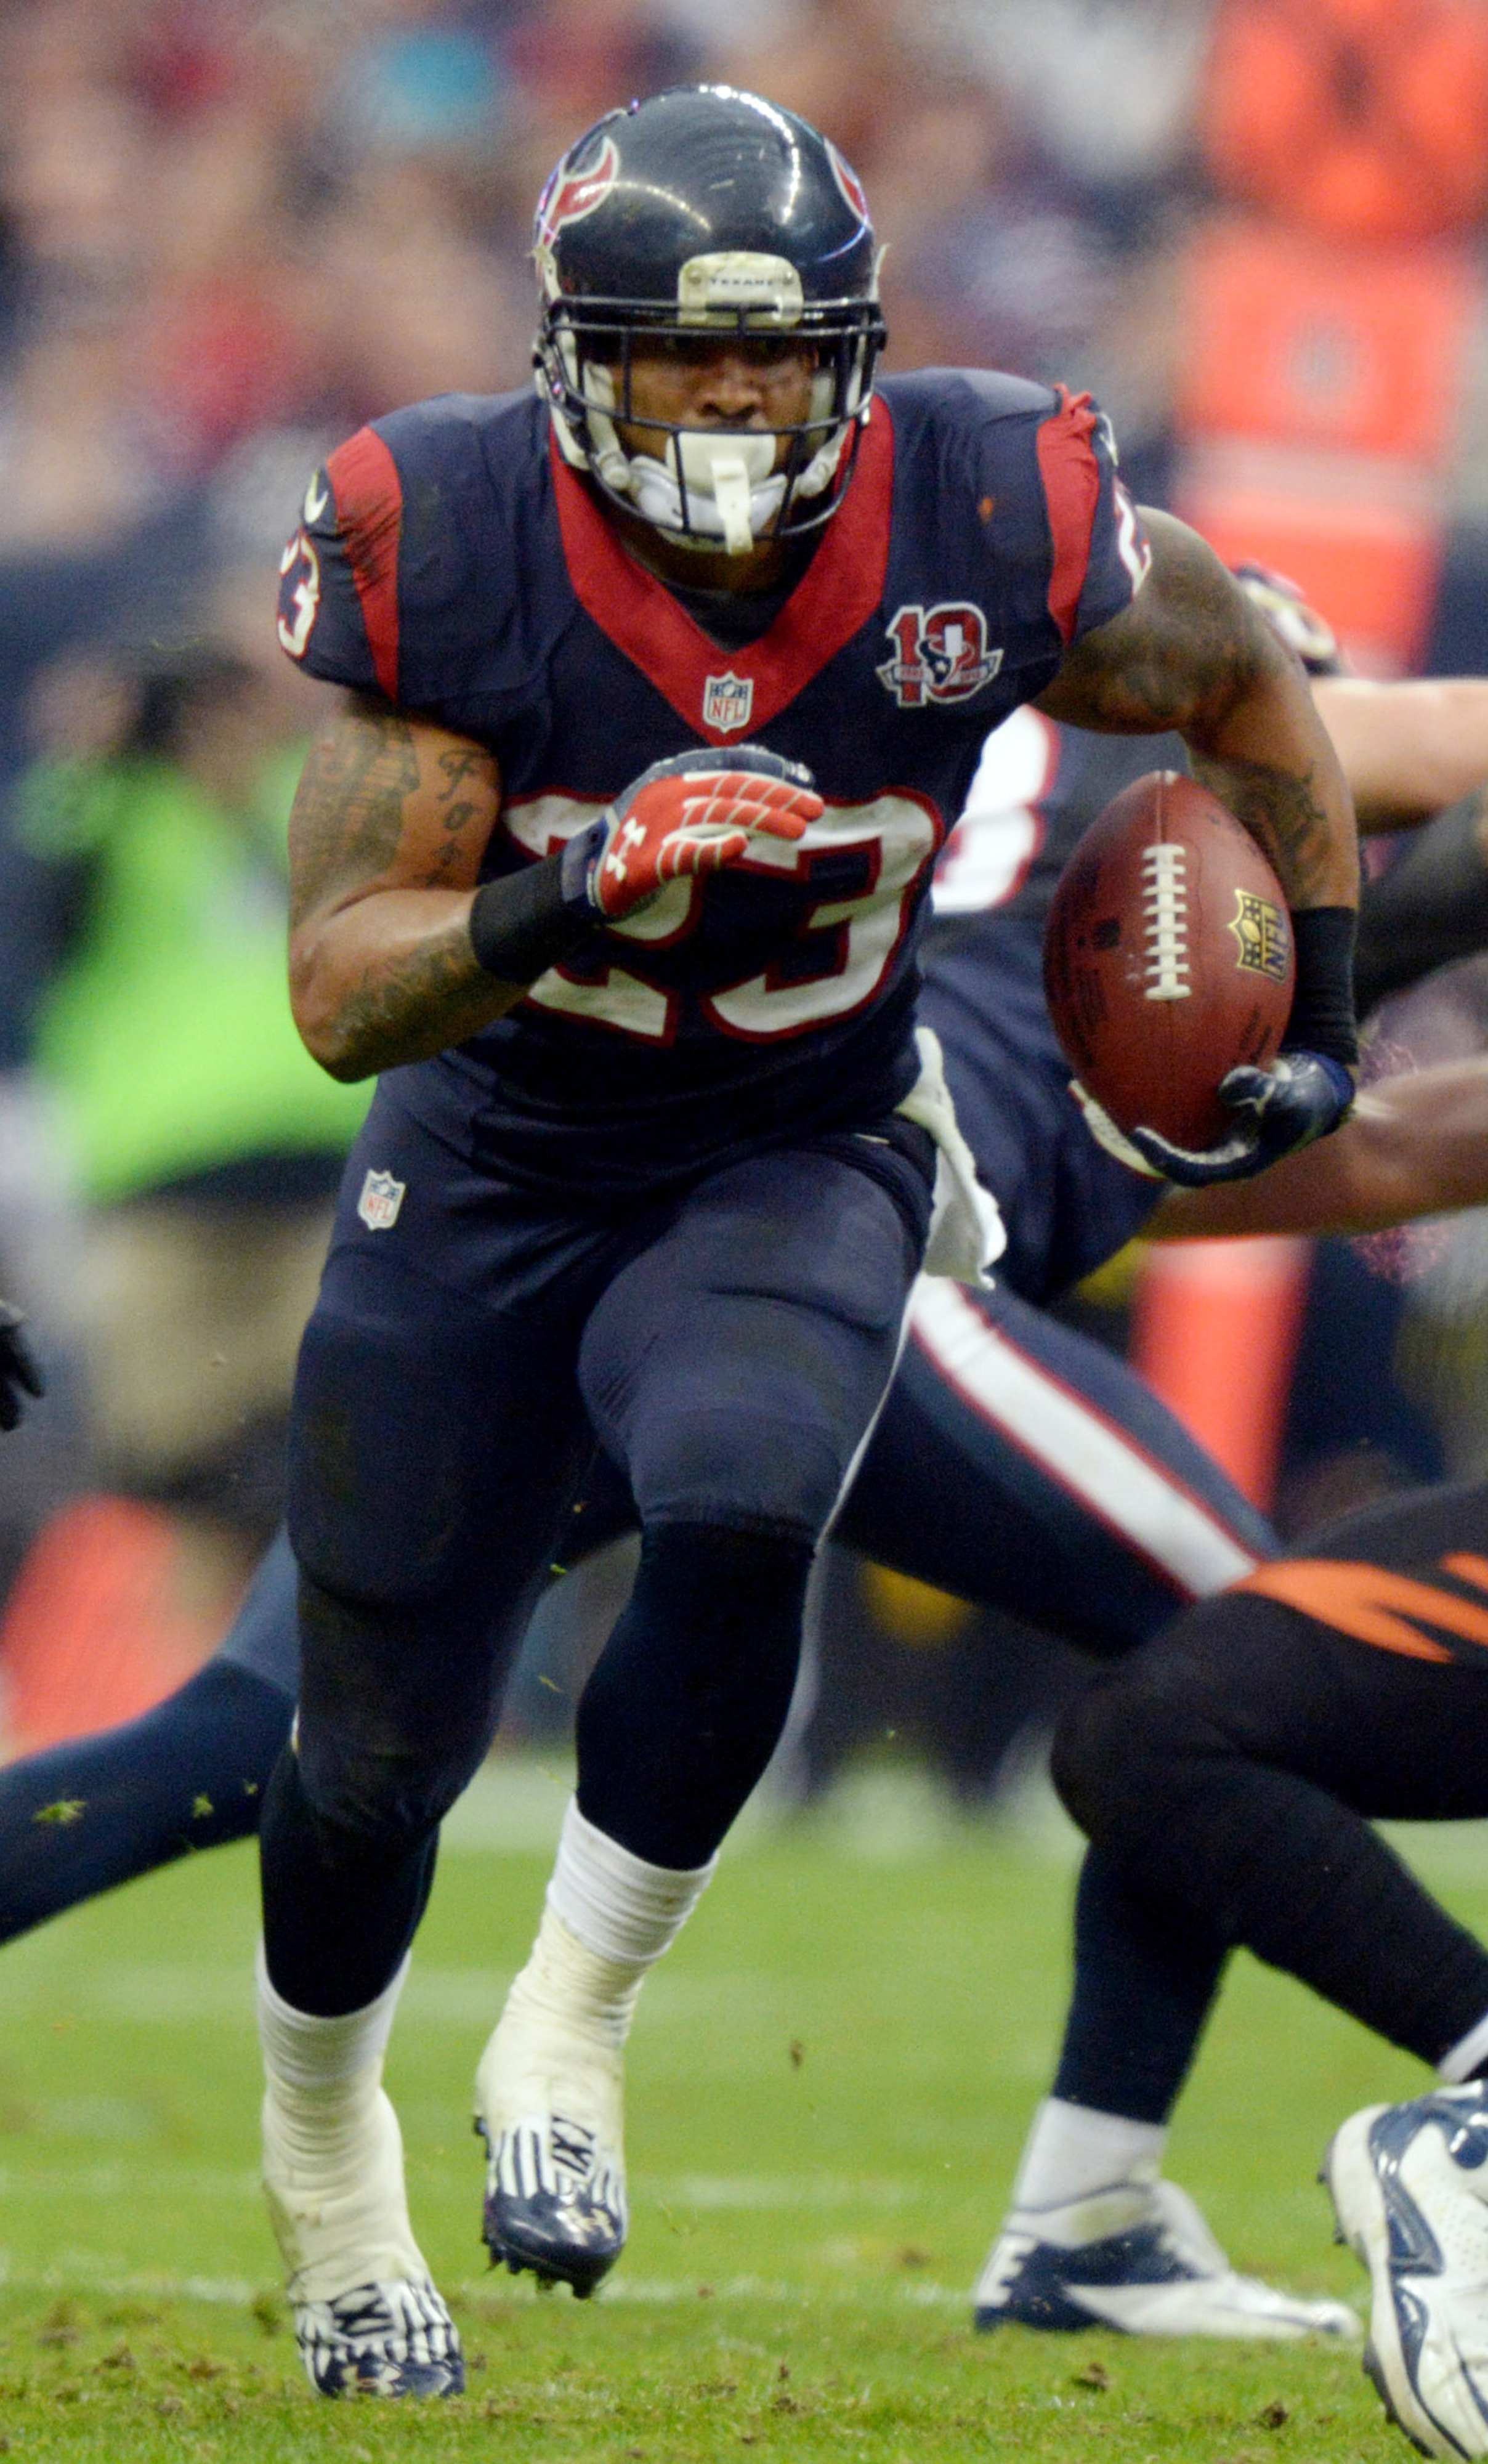 NFL injury report, Week 1: Updates on Arian Foster, Roddy White and more